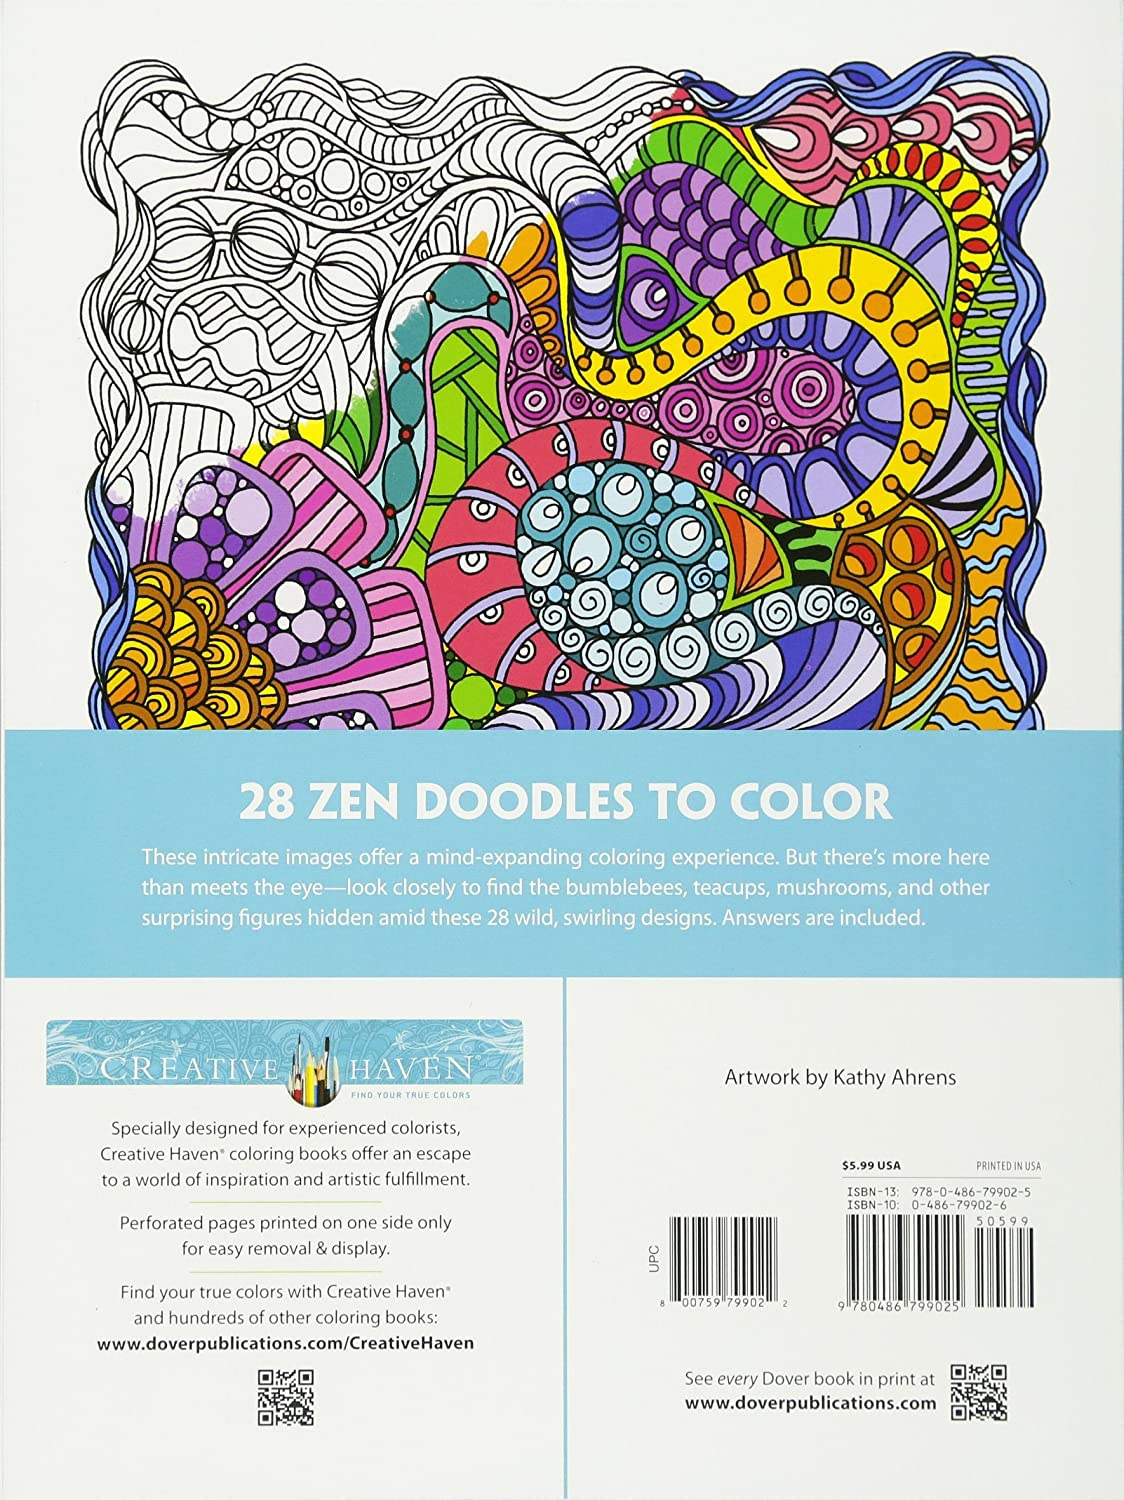 Ze zen inspiration coloring book - Amazon Com Creative Haven Dream Doodles A Coloring Book With A Hidden Picture Twist Adult Coloring 0800759799022 Kathleen G Ahrens Books